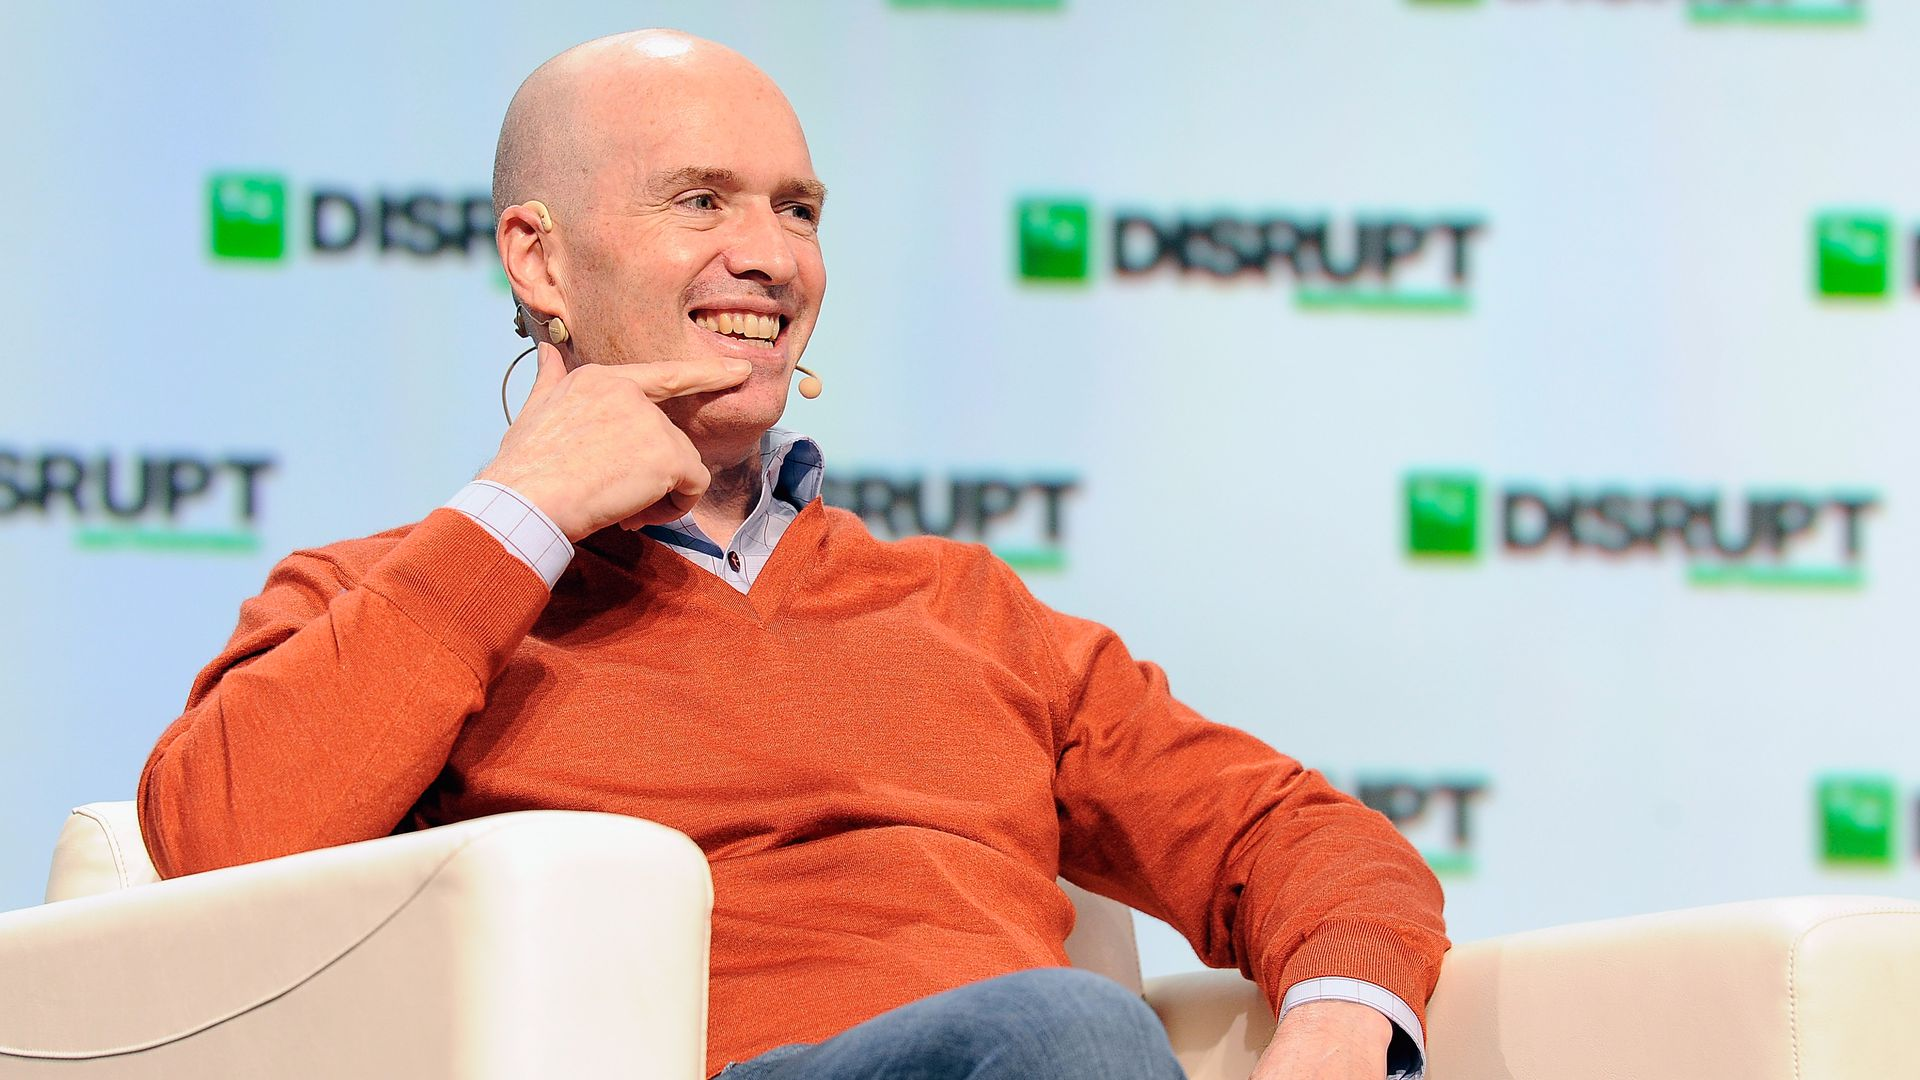 In this image, Andreessen Horowitz sits in a chair and speaks.